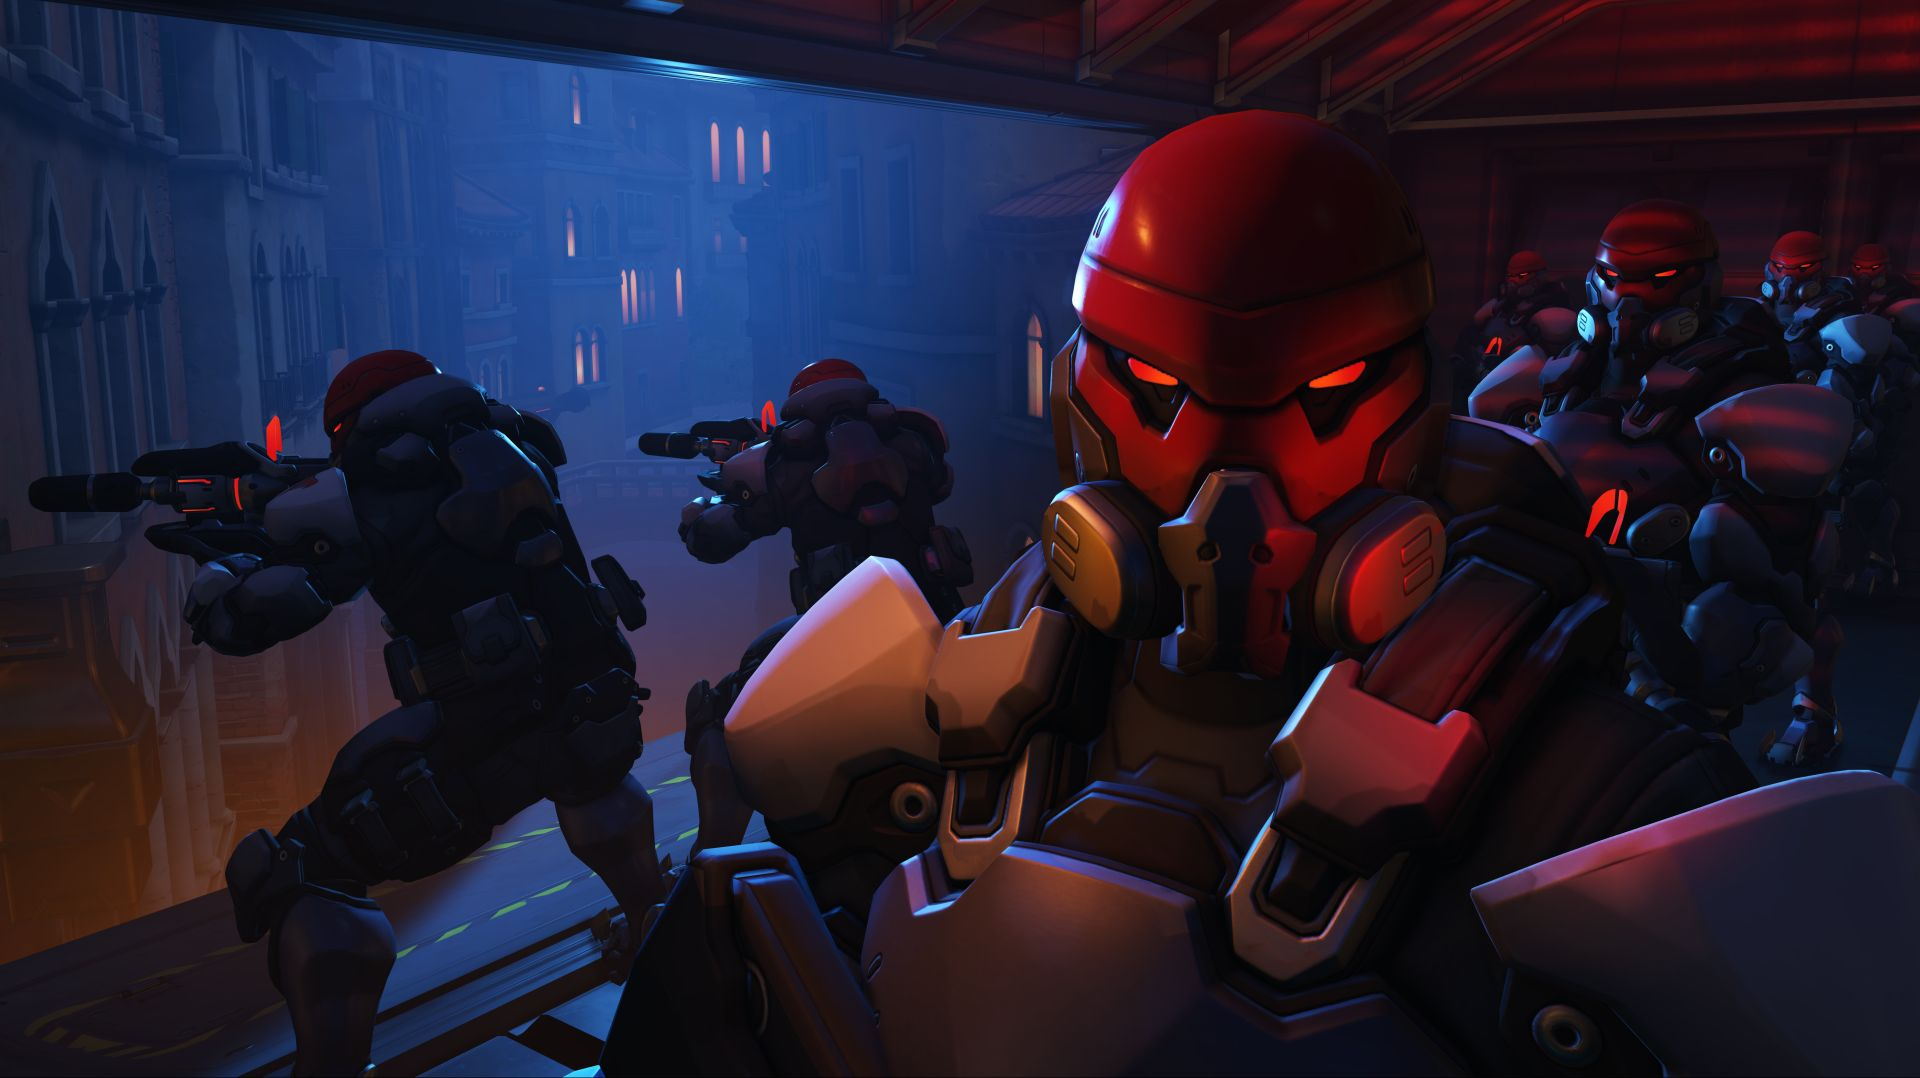 Overwatch Players Figure Out How To Play As Villains From New PVE Mode